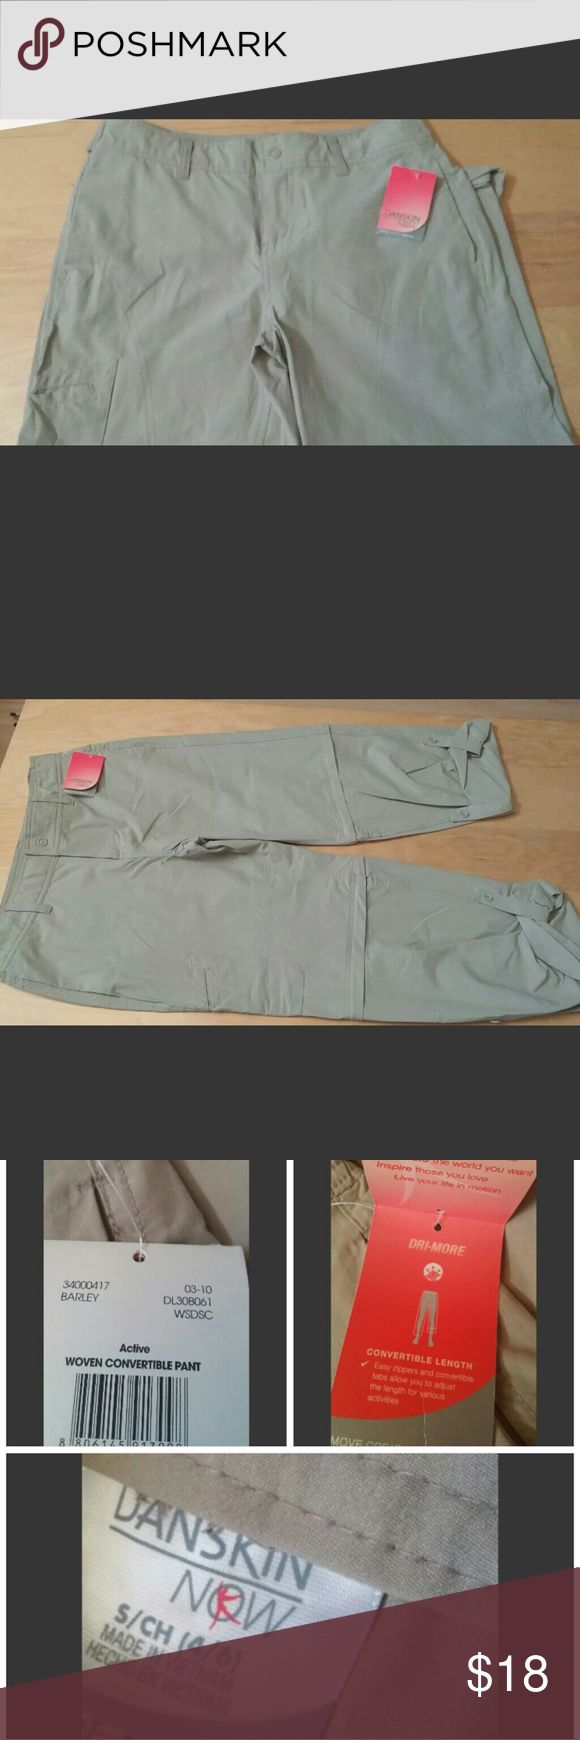 """NWT Small Danskin convertible pant with drimore ladies woven convertible Danskin pant with Drimore. size Small - color barley. 34"""" long rolled up, 16"""" waist, 23"""" inseam, 20"""" hip. Measured flat. 196/B6 Danskin Now Pants Trousers"""